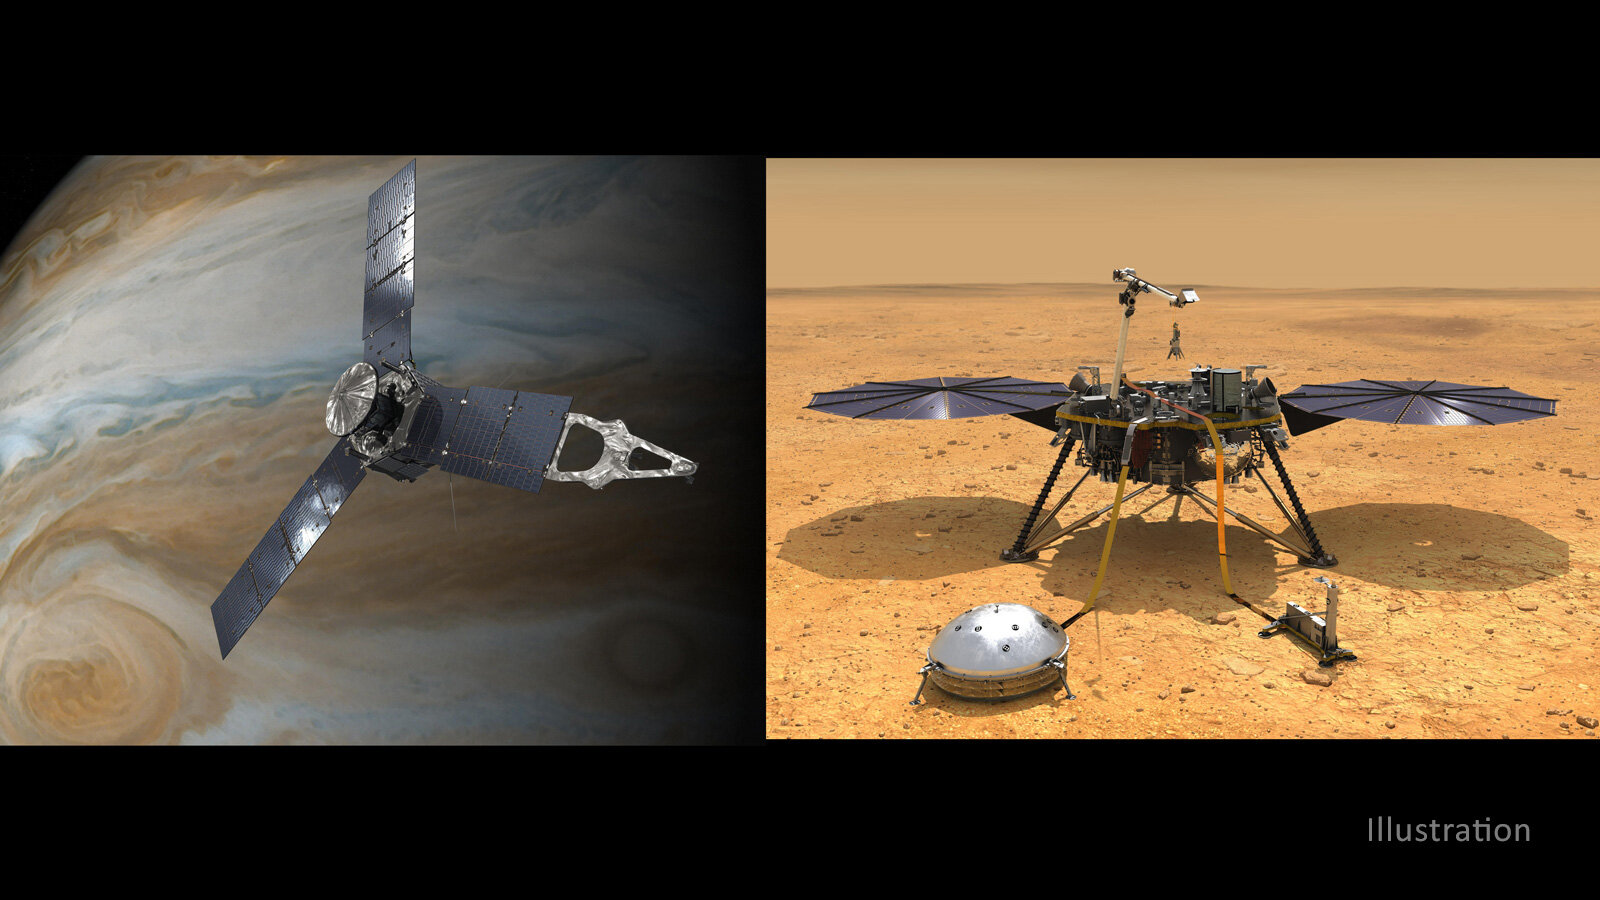 NASA extends exploration for two planetary science missions